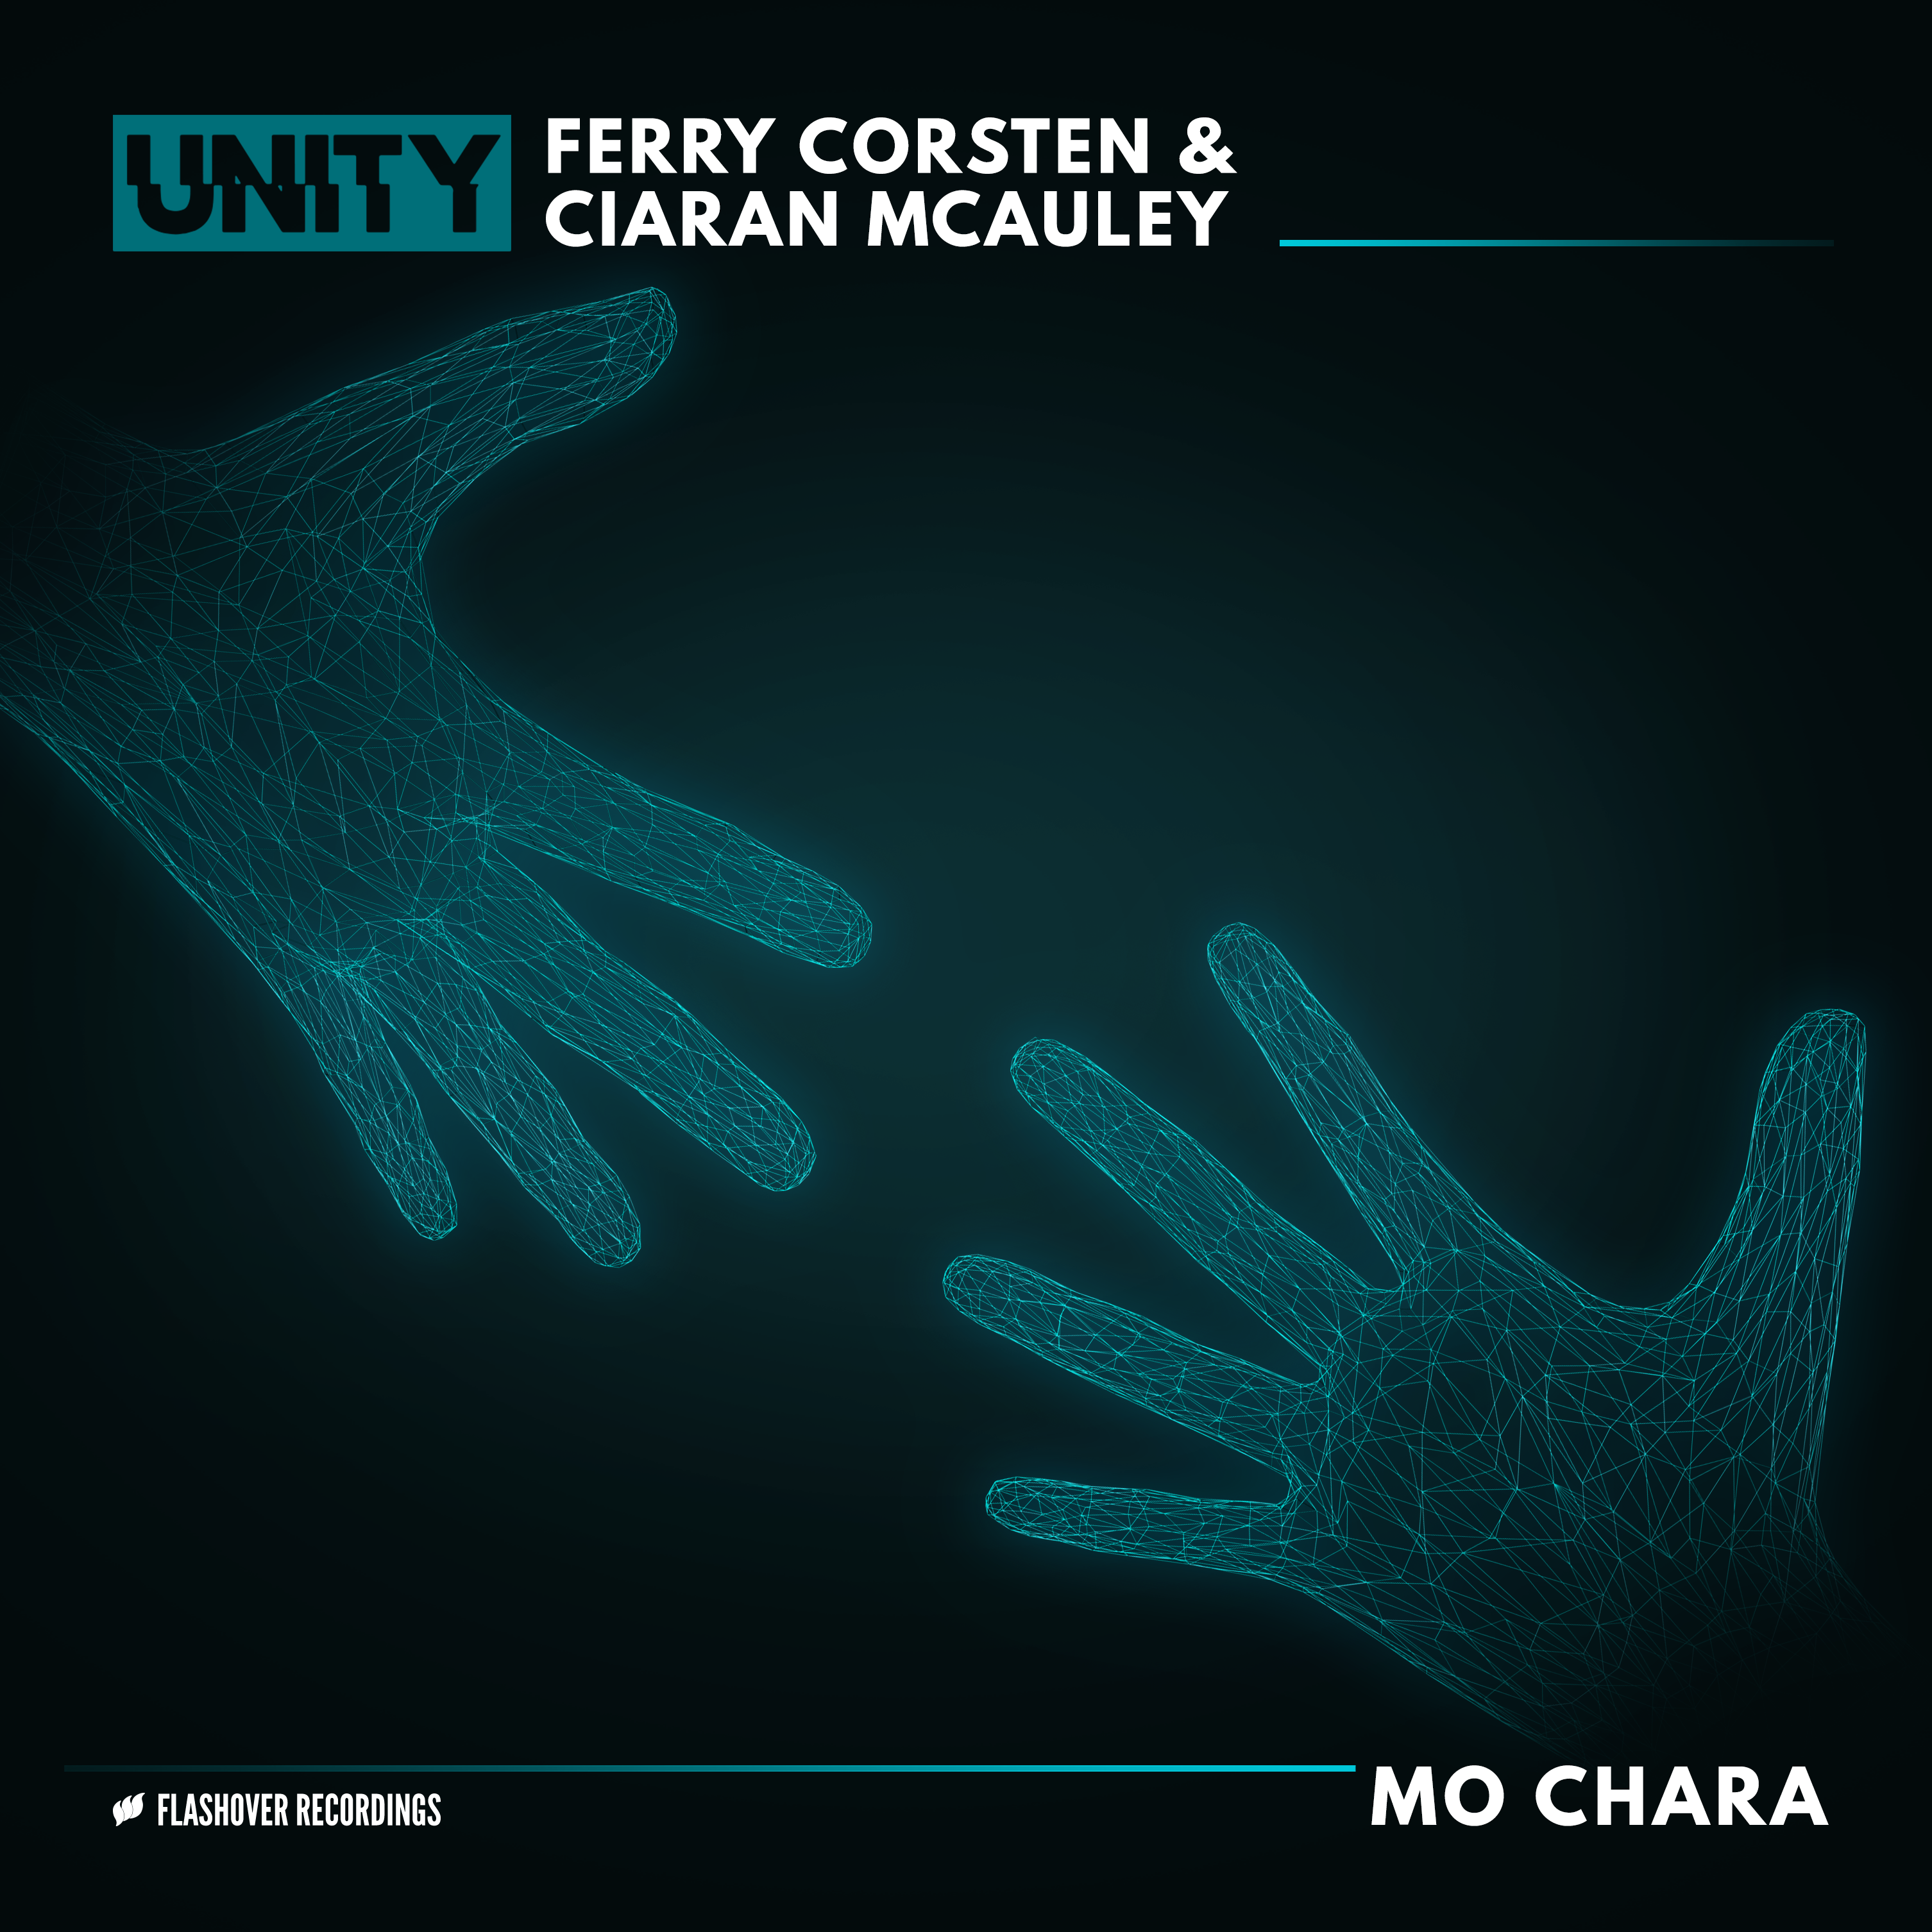 Unity_COVER2